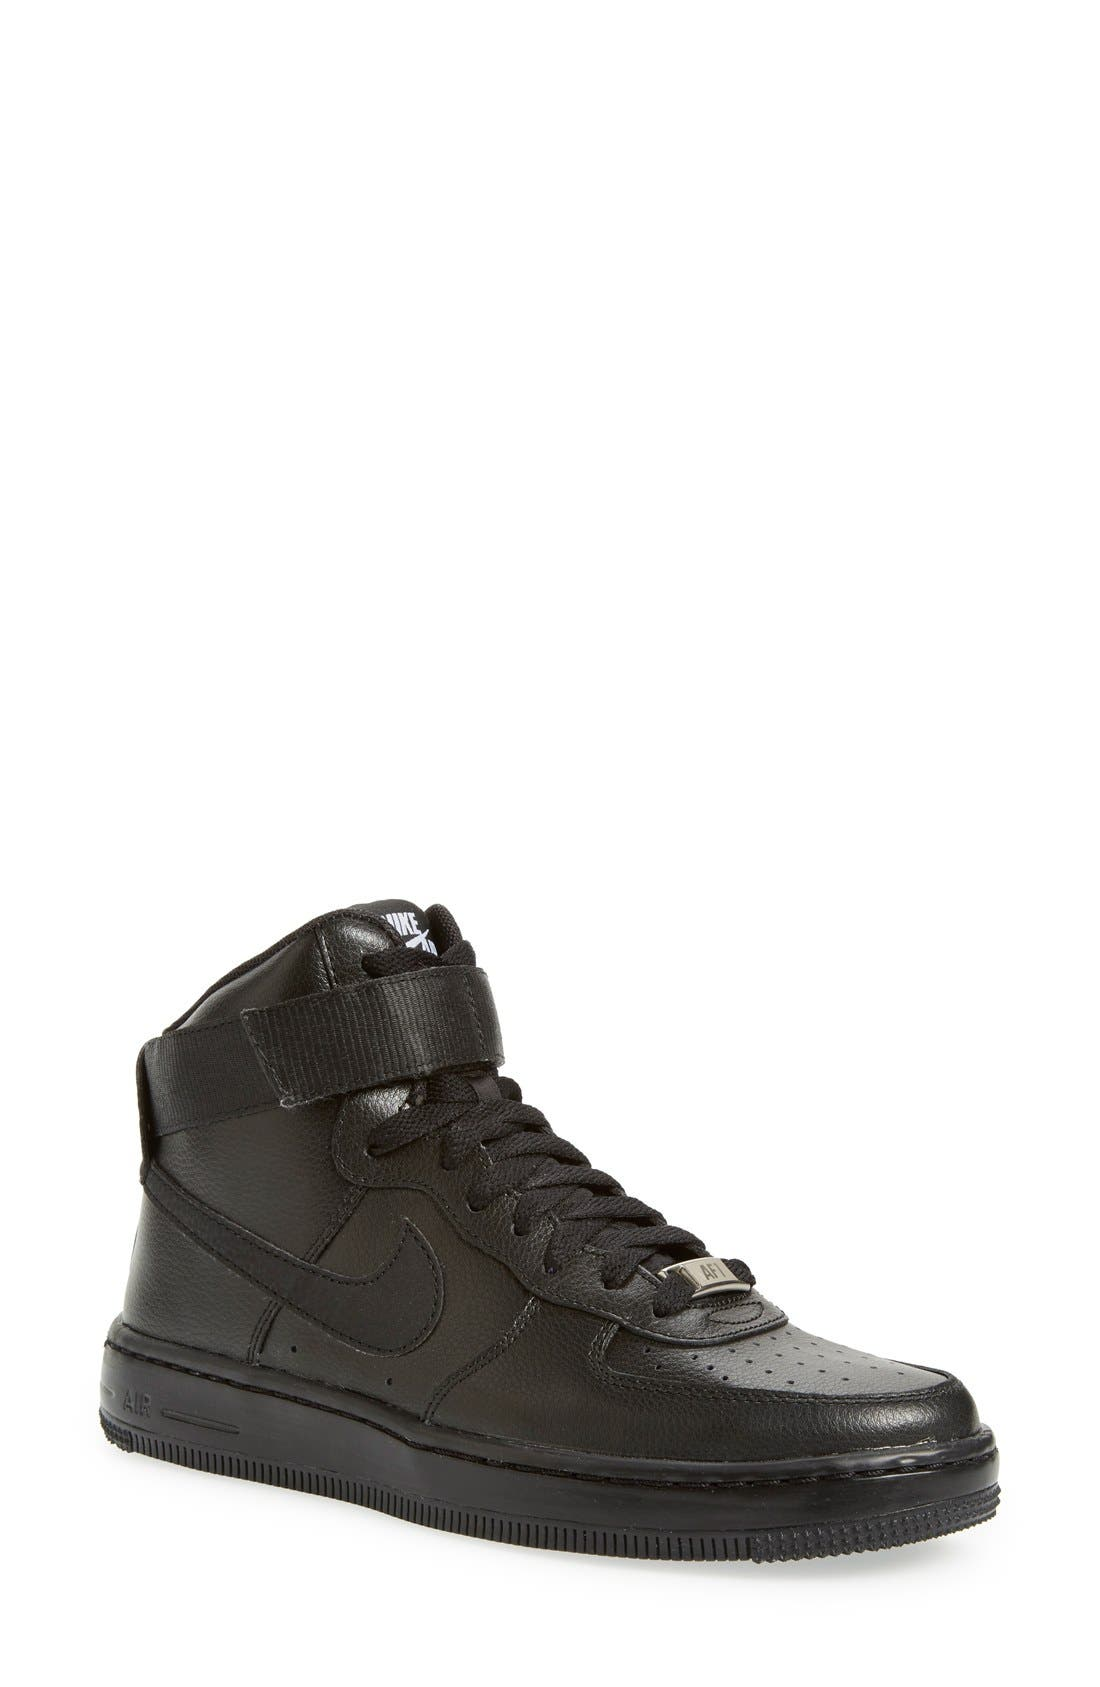 Main Image - Nike 'AF-1 Ultra Force ESS' High Top Sneaker (Women)